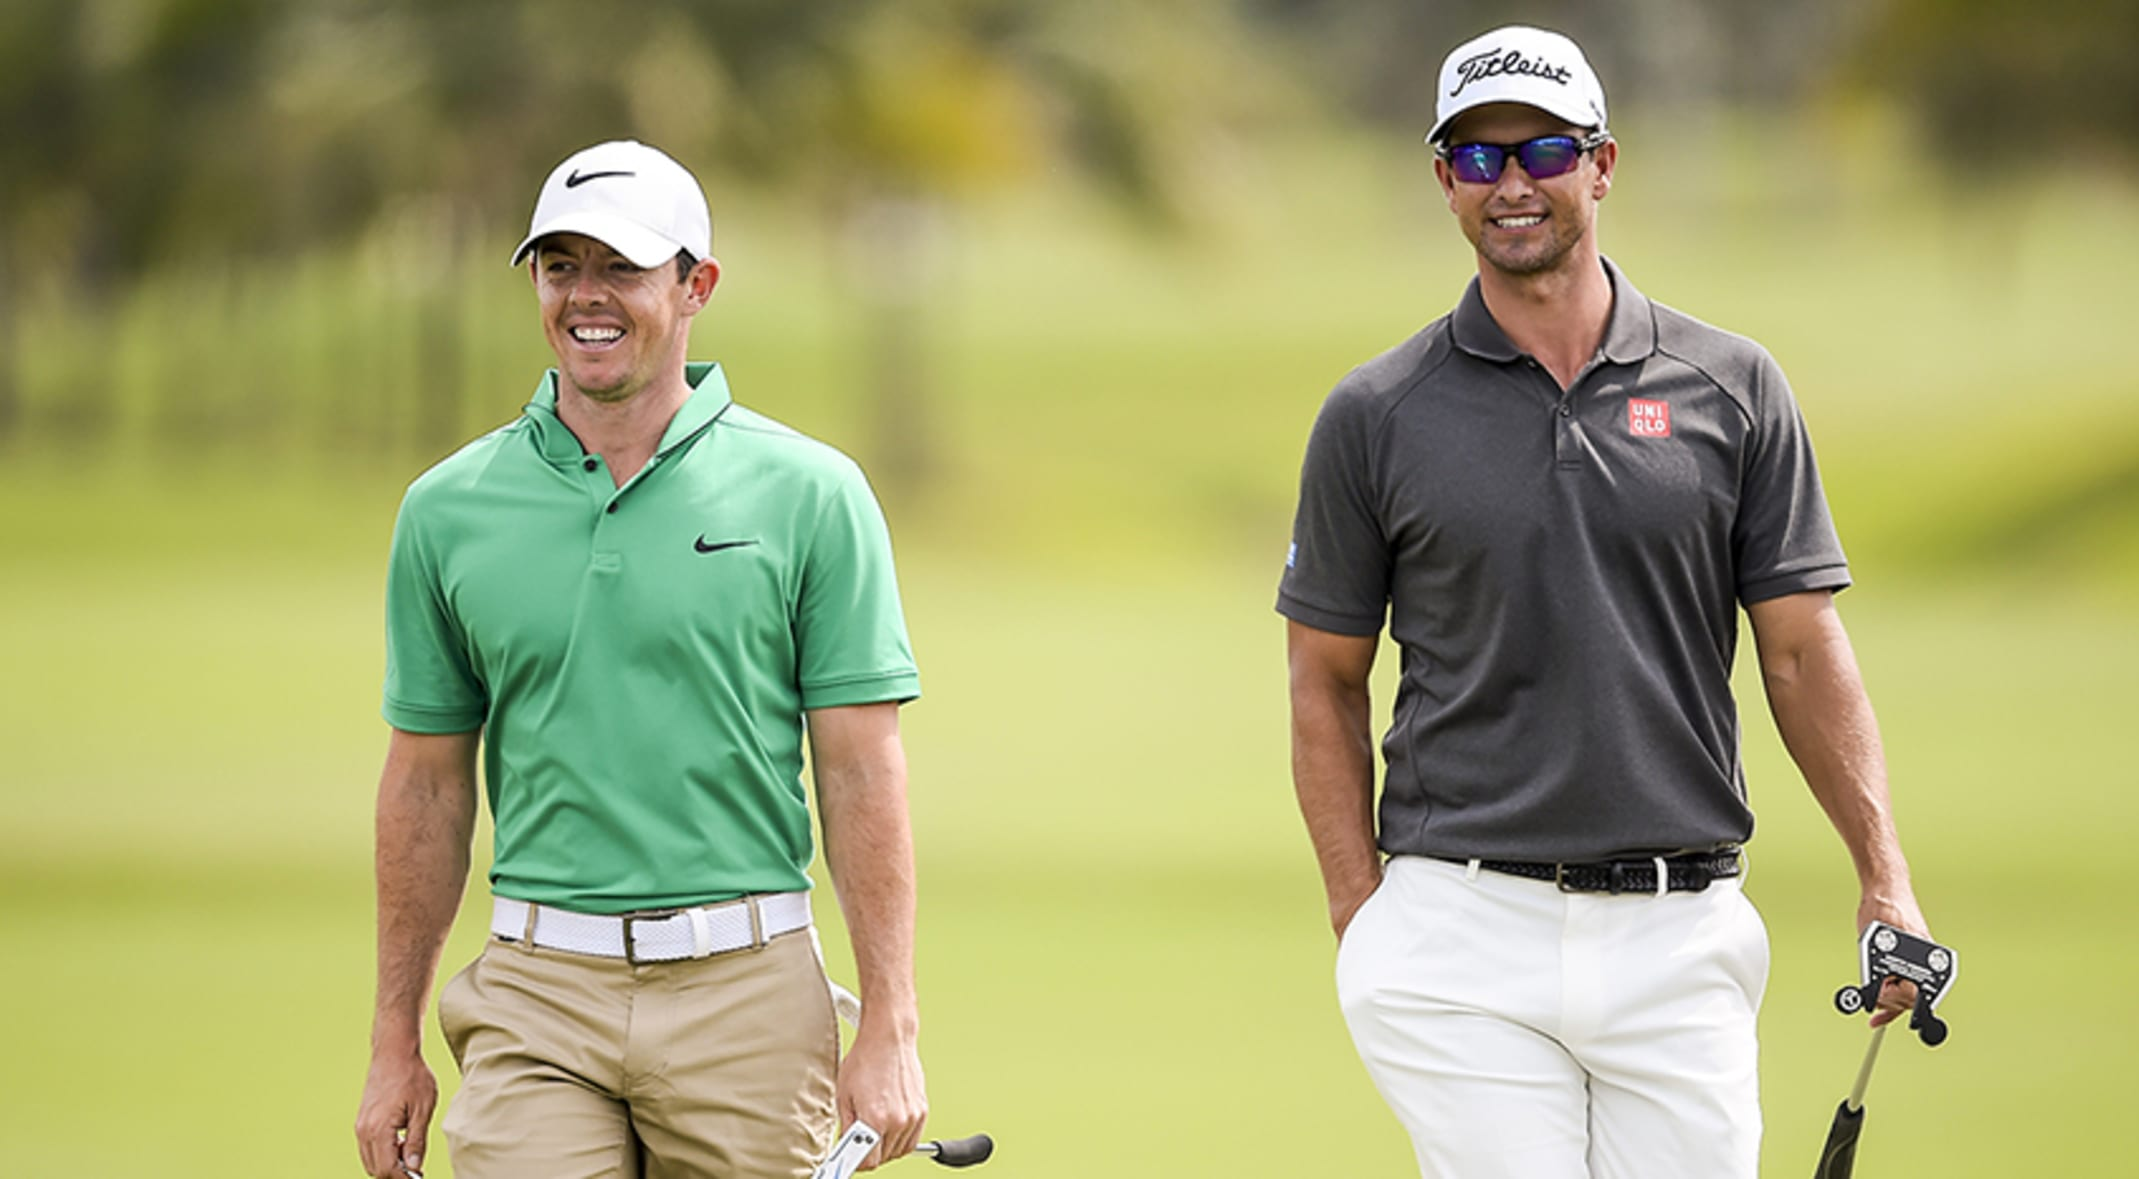 da9aa4e2c24f4e Rory McIlroy will play with former Masters champion Adam Scott for the first  two rounds at